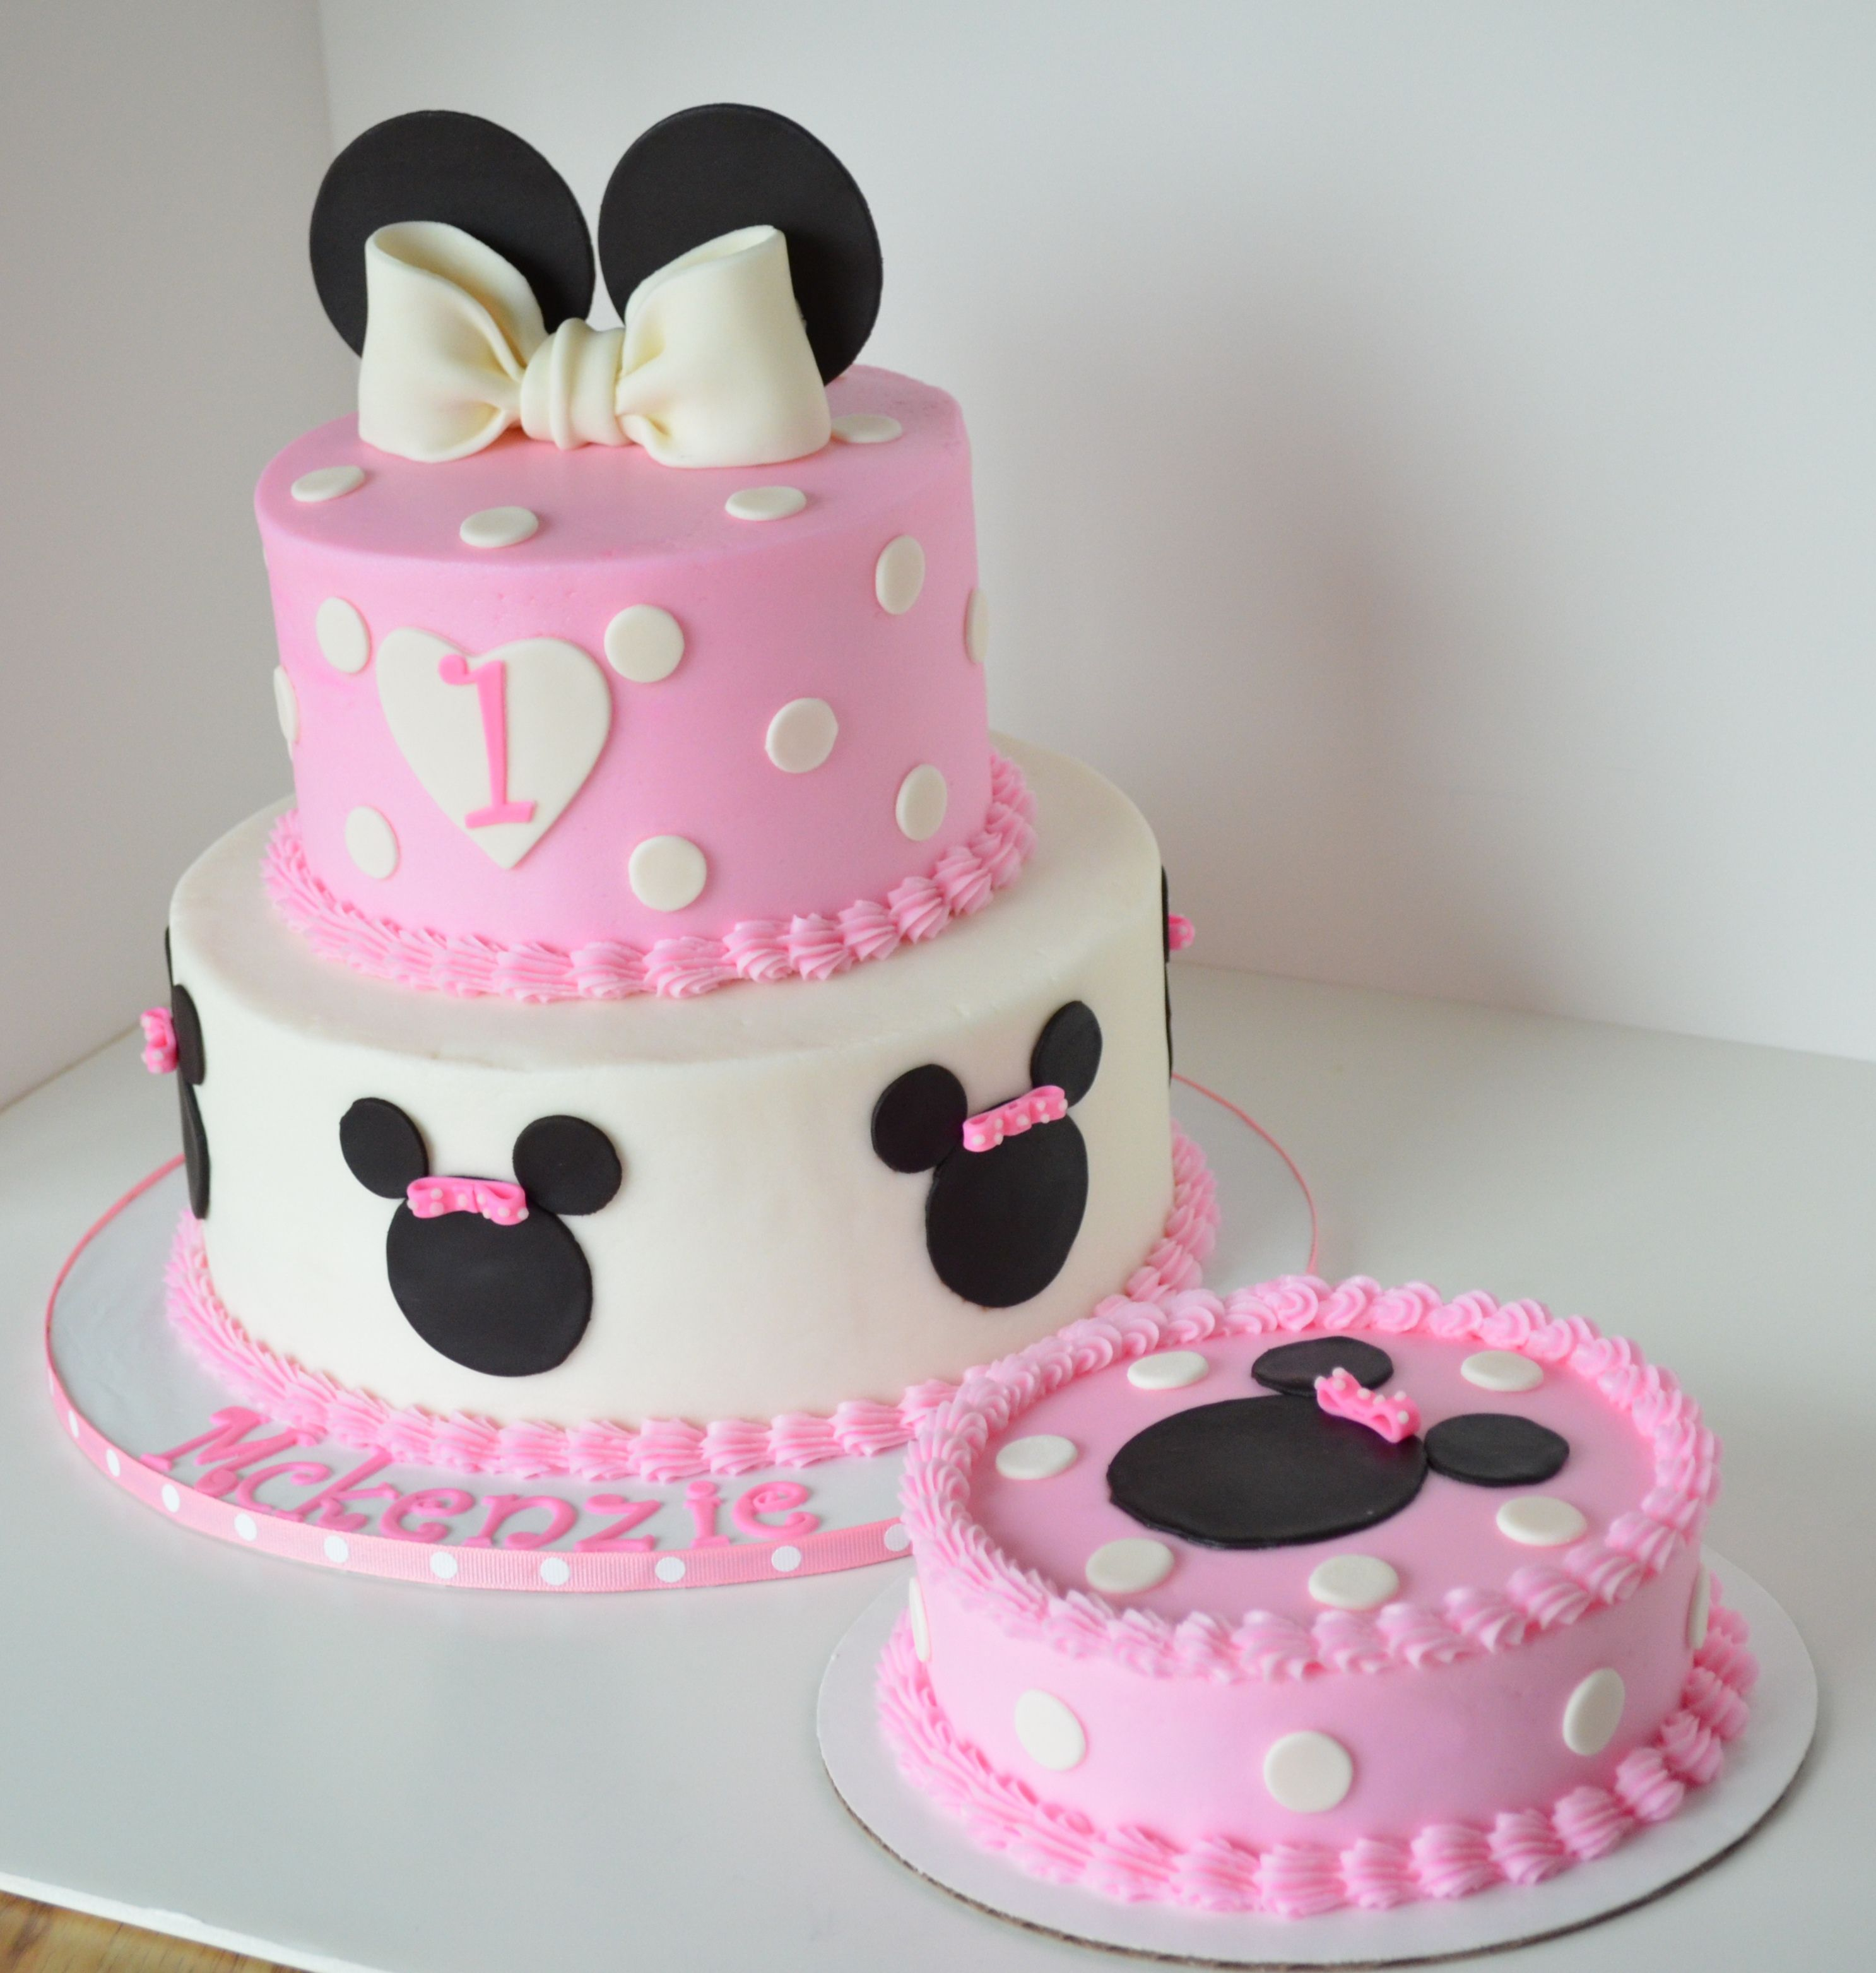 Adorable Minnie Mouse Birthday Party Cake And Smash